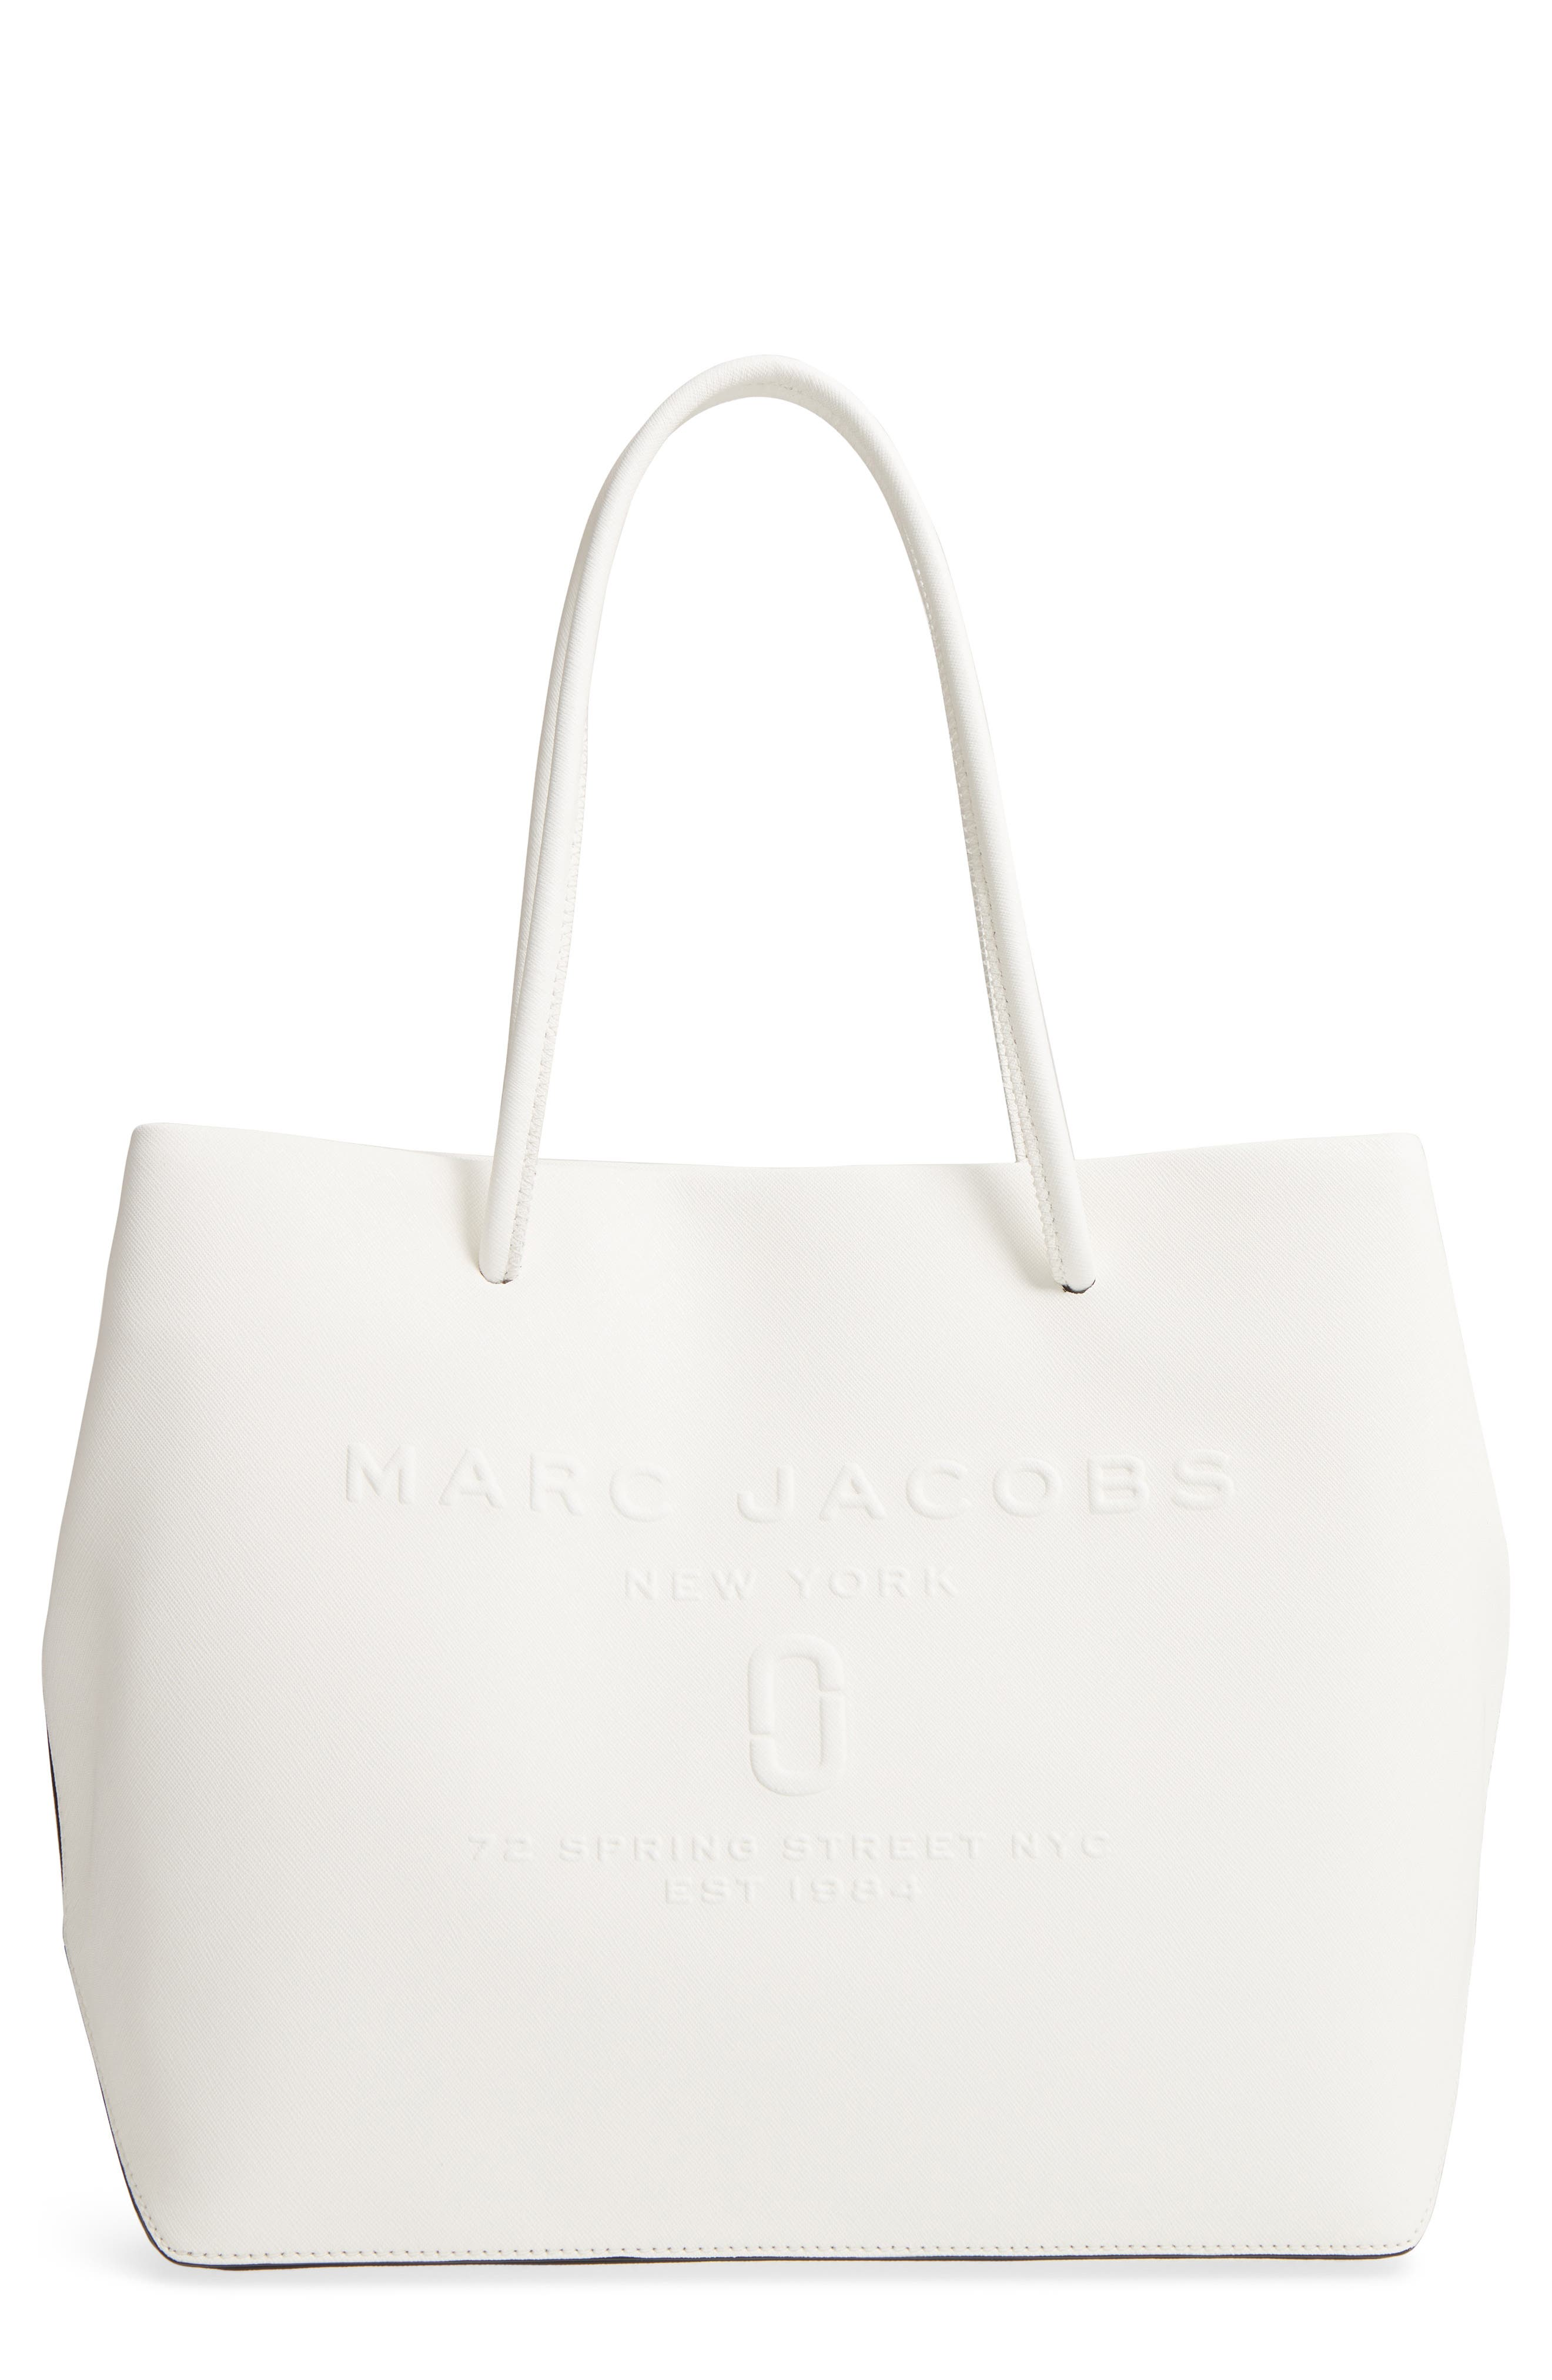 Logo Leather Shopper by Marc Jacobs